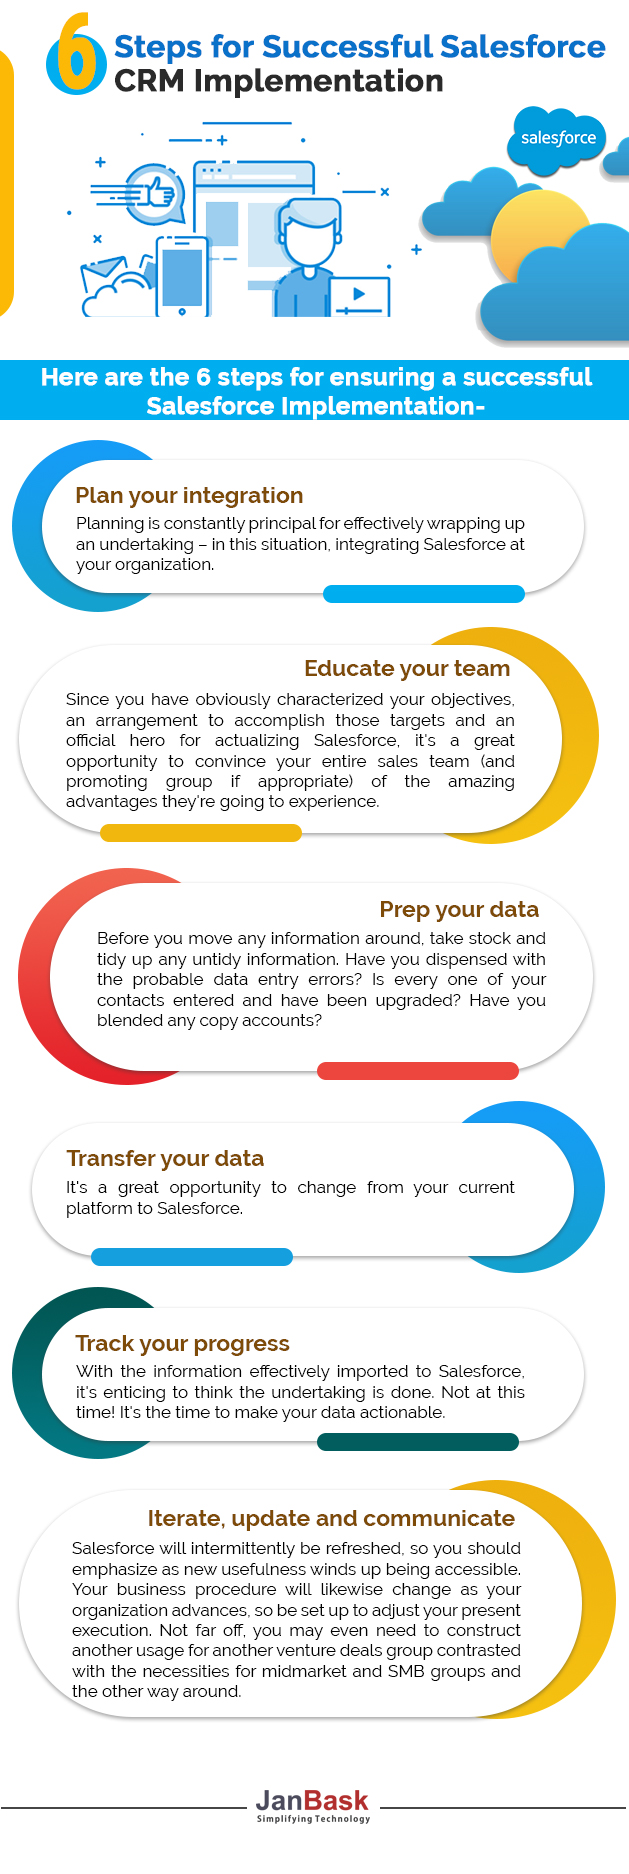 infographic 6 Steps for successful salesforce CRM Implementation